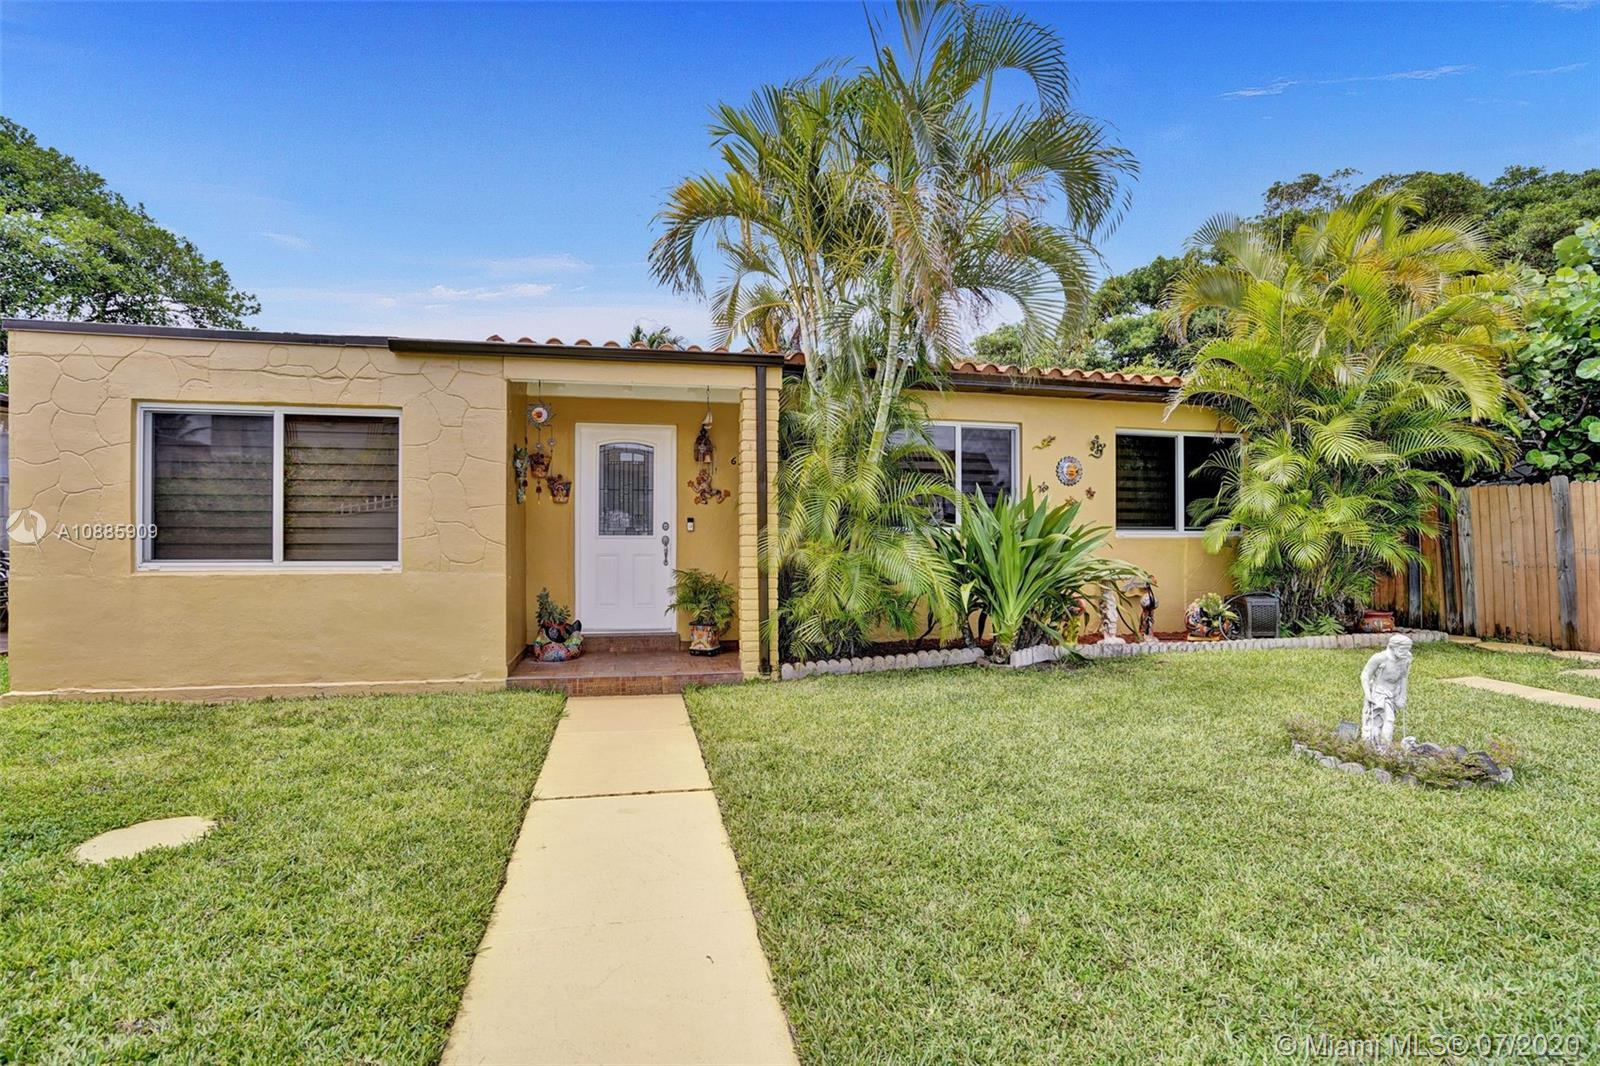 Gated property located in North Beach just steps away from the ocean. Upgraded open kitchen with sta